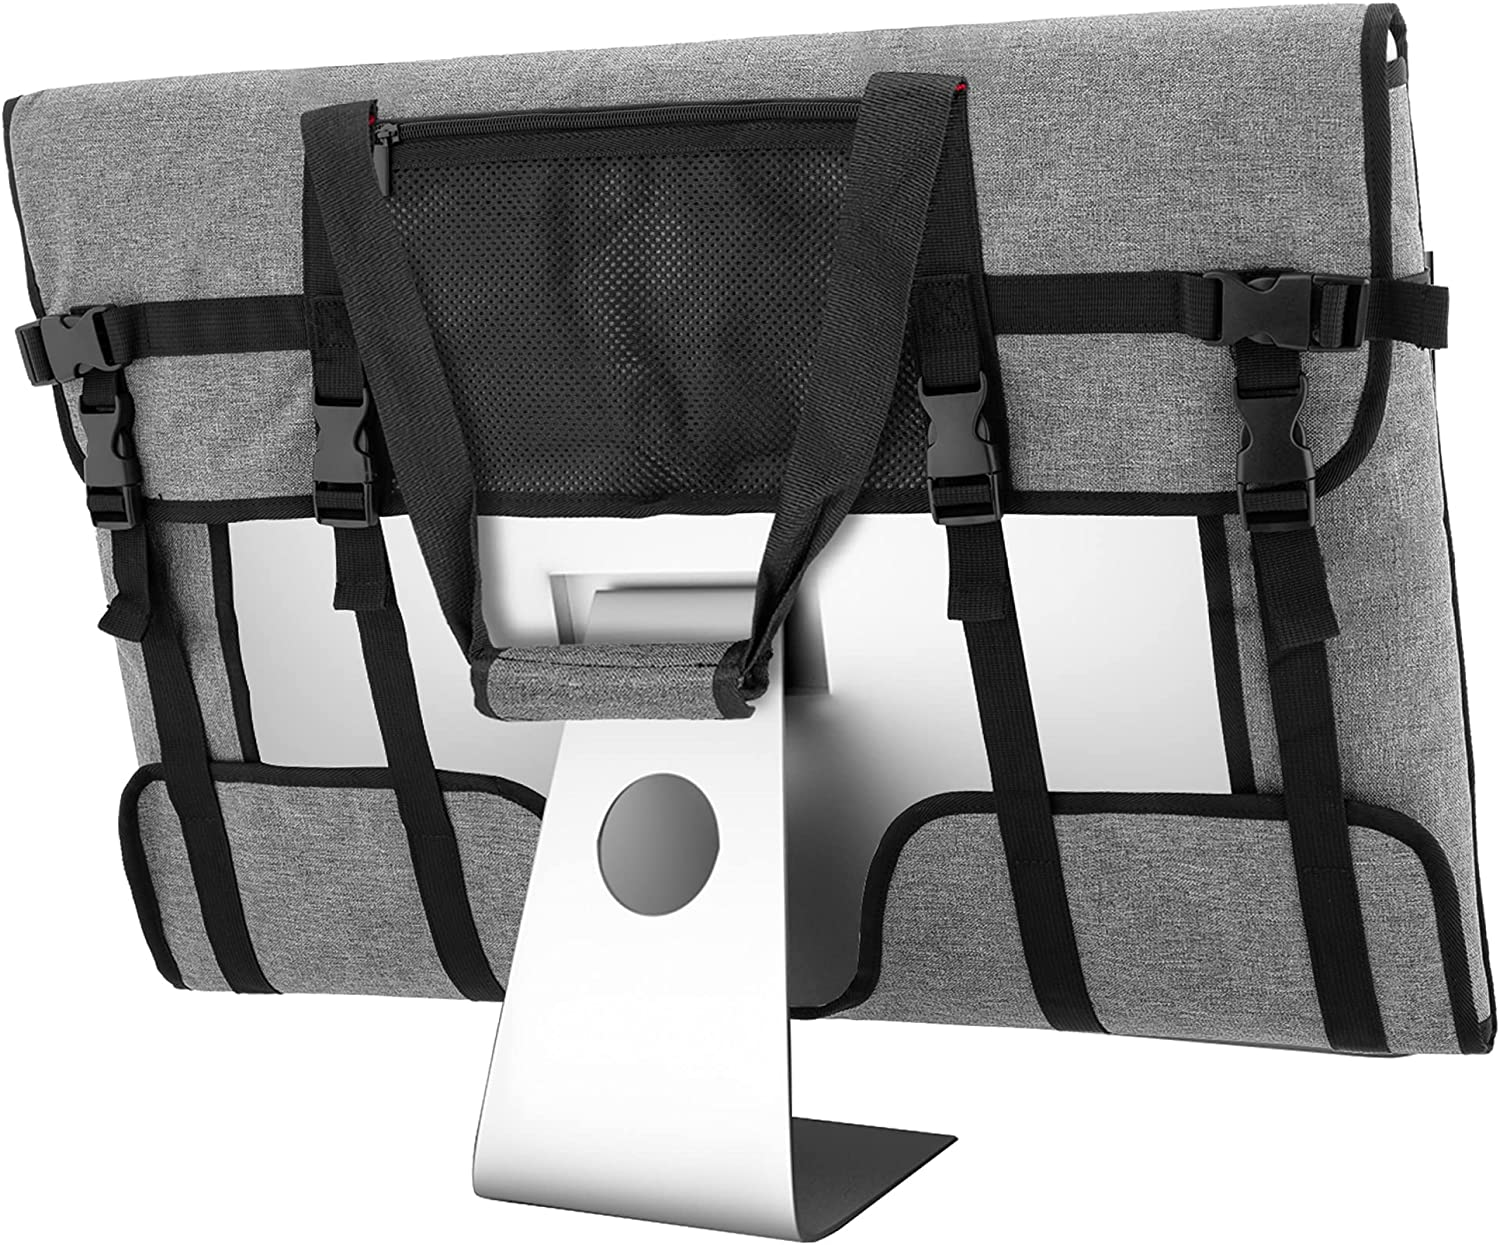 Trunab Travel Carrying Case Compatible with iMac 27